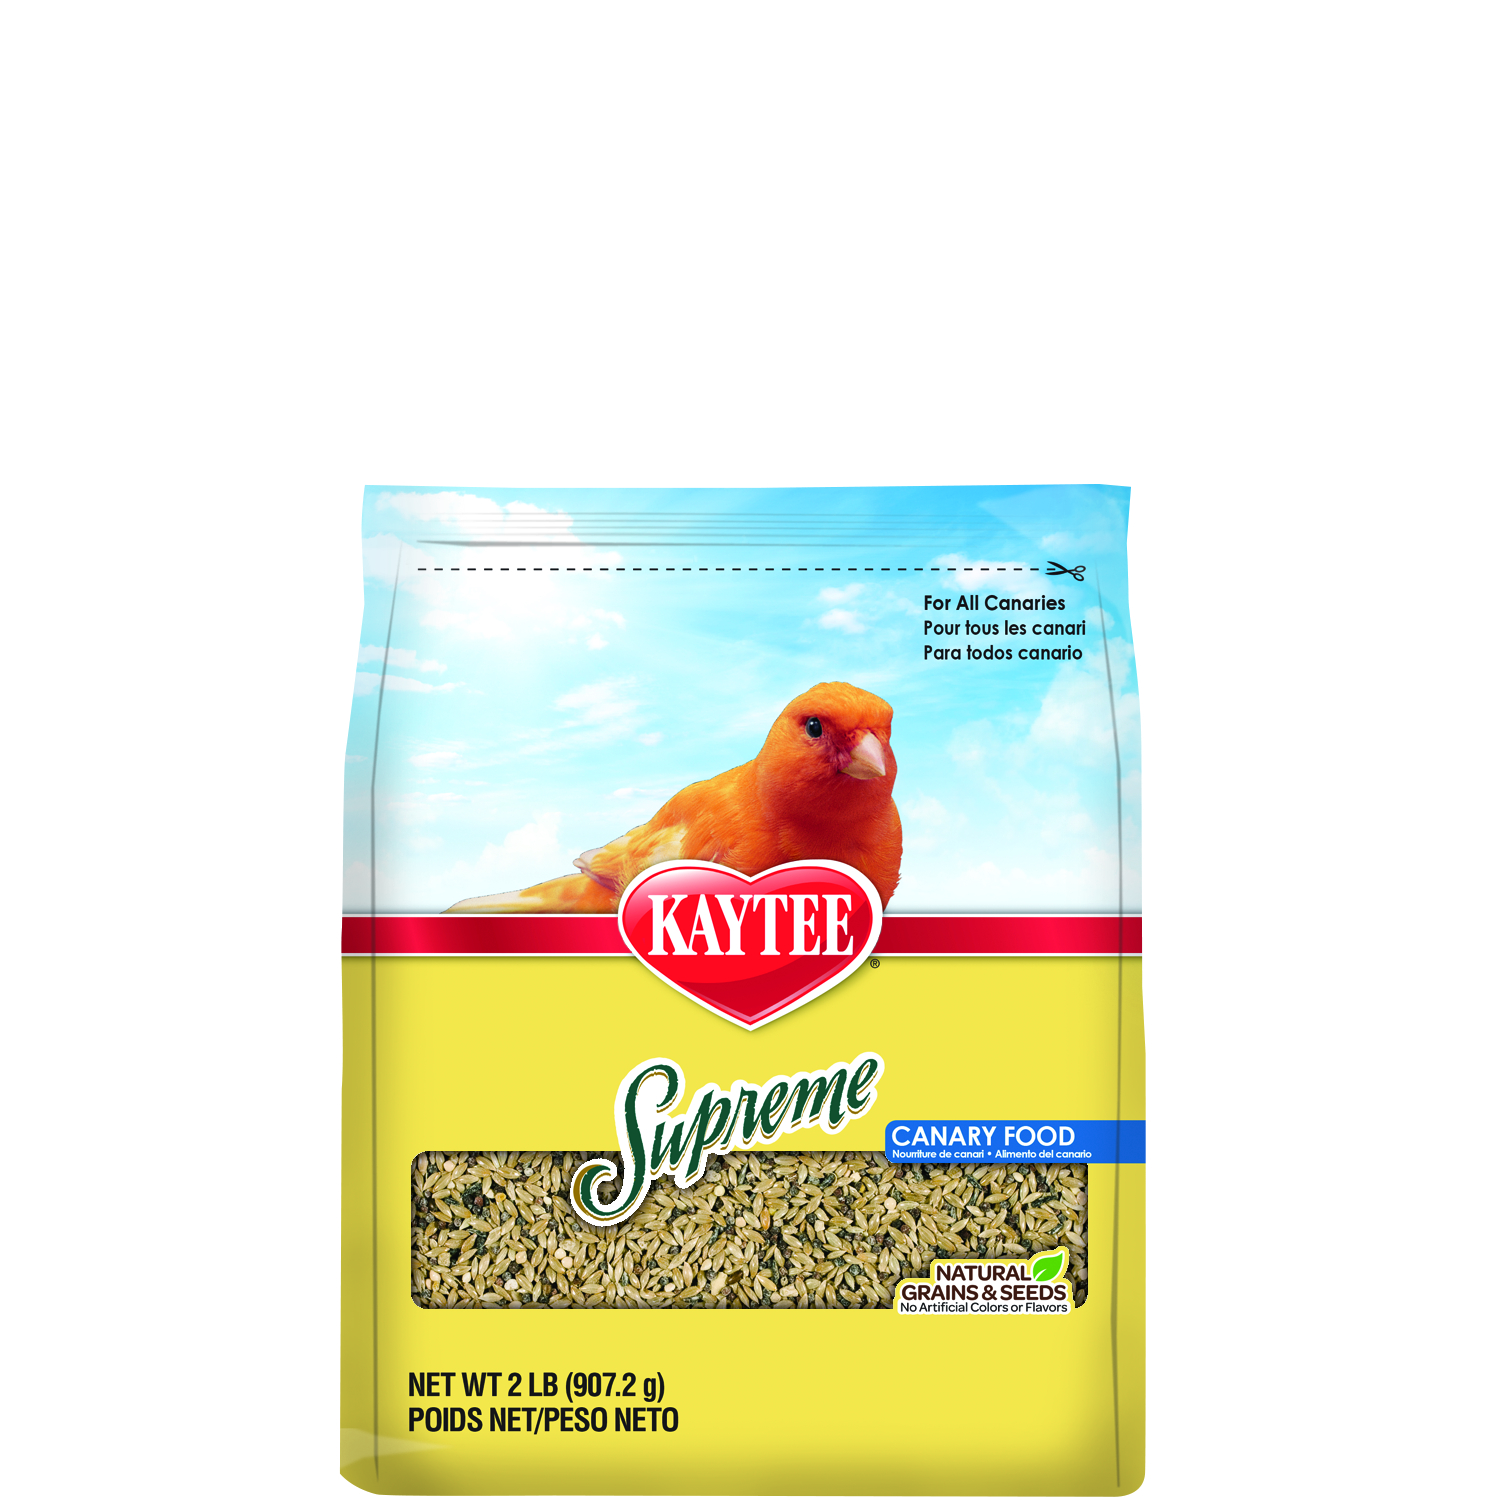 Kaytee Food Supreme Canary Bird Food Image